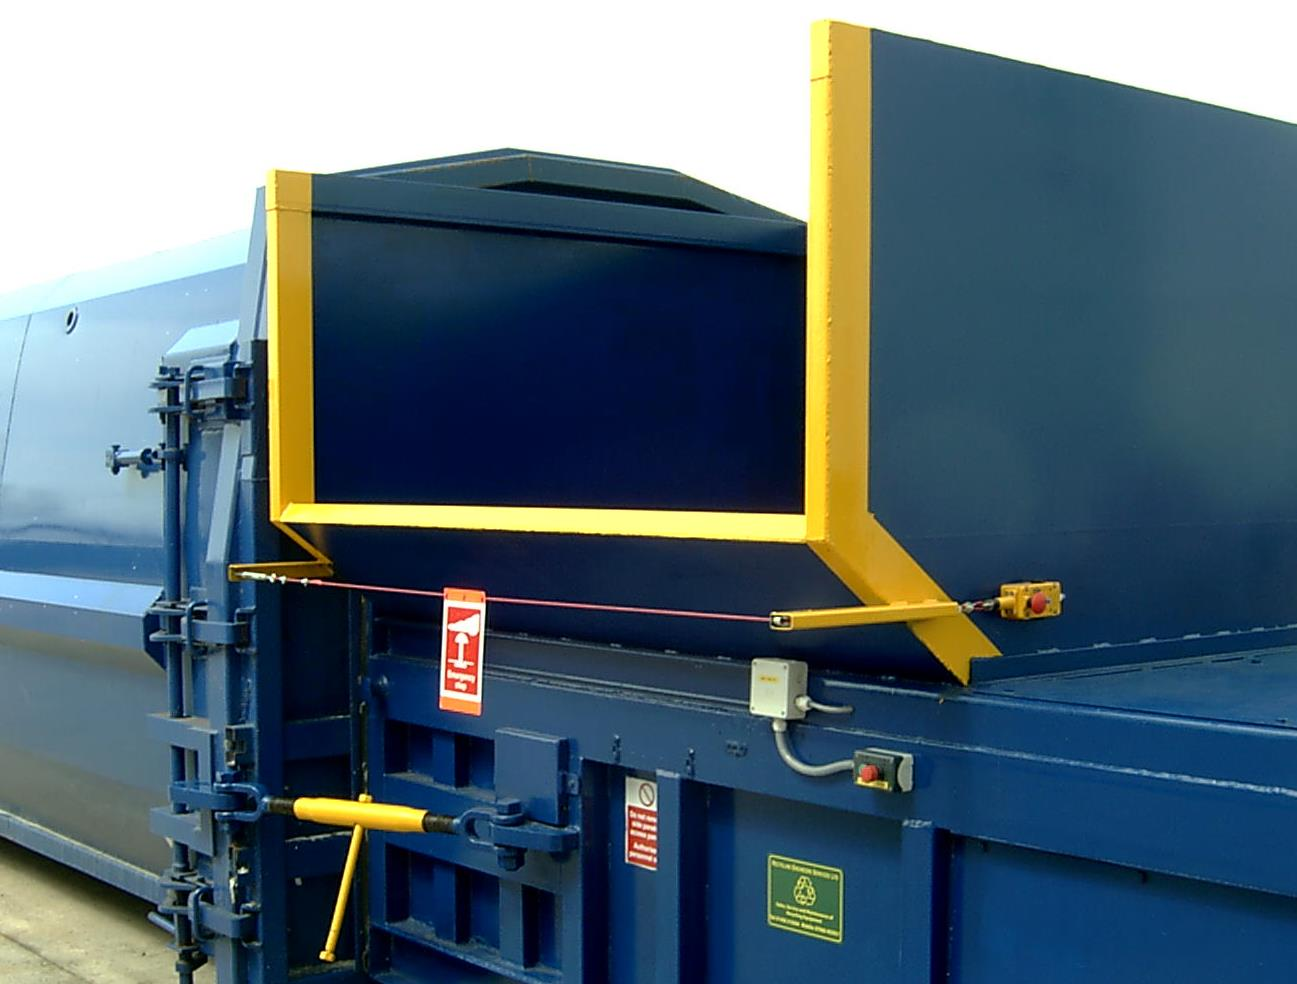 another view of a baler